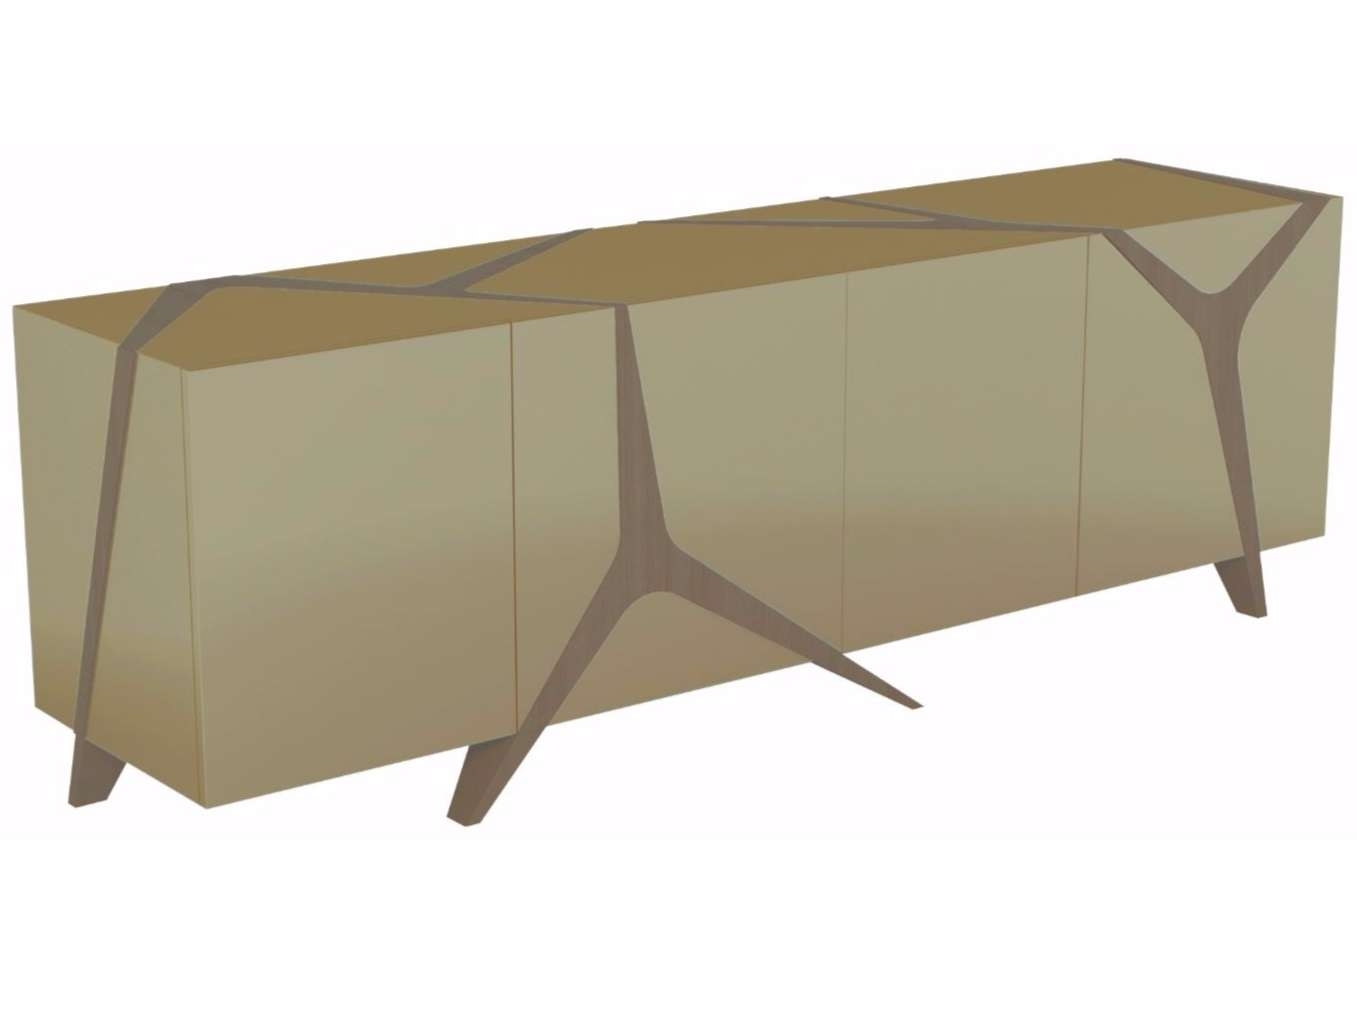 Rosace | Sideboard Les Contemporains Collectionroche Bobois In Roche Bobois Sideboards (View 14 of 20)